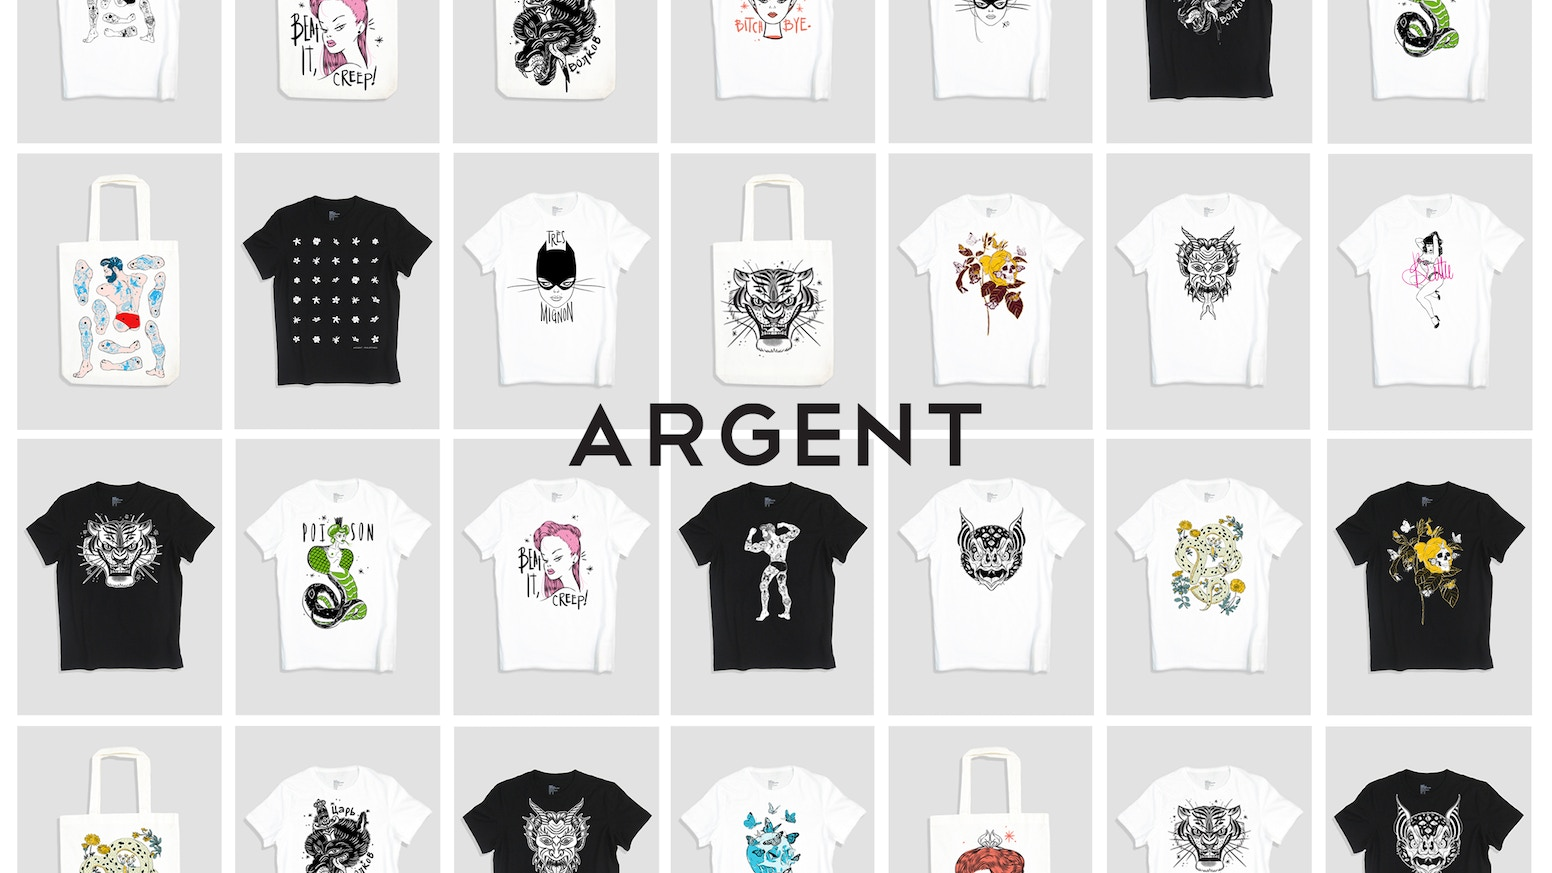 Design t shirt on illustrator - Argent Is A Fledgeling T Shirt Company That Delivers Handprinted Designs By Brooklyn Based Illustrator Adrien Dacquel